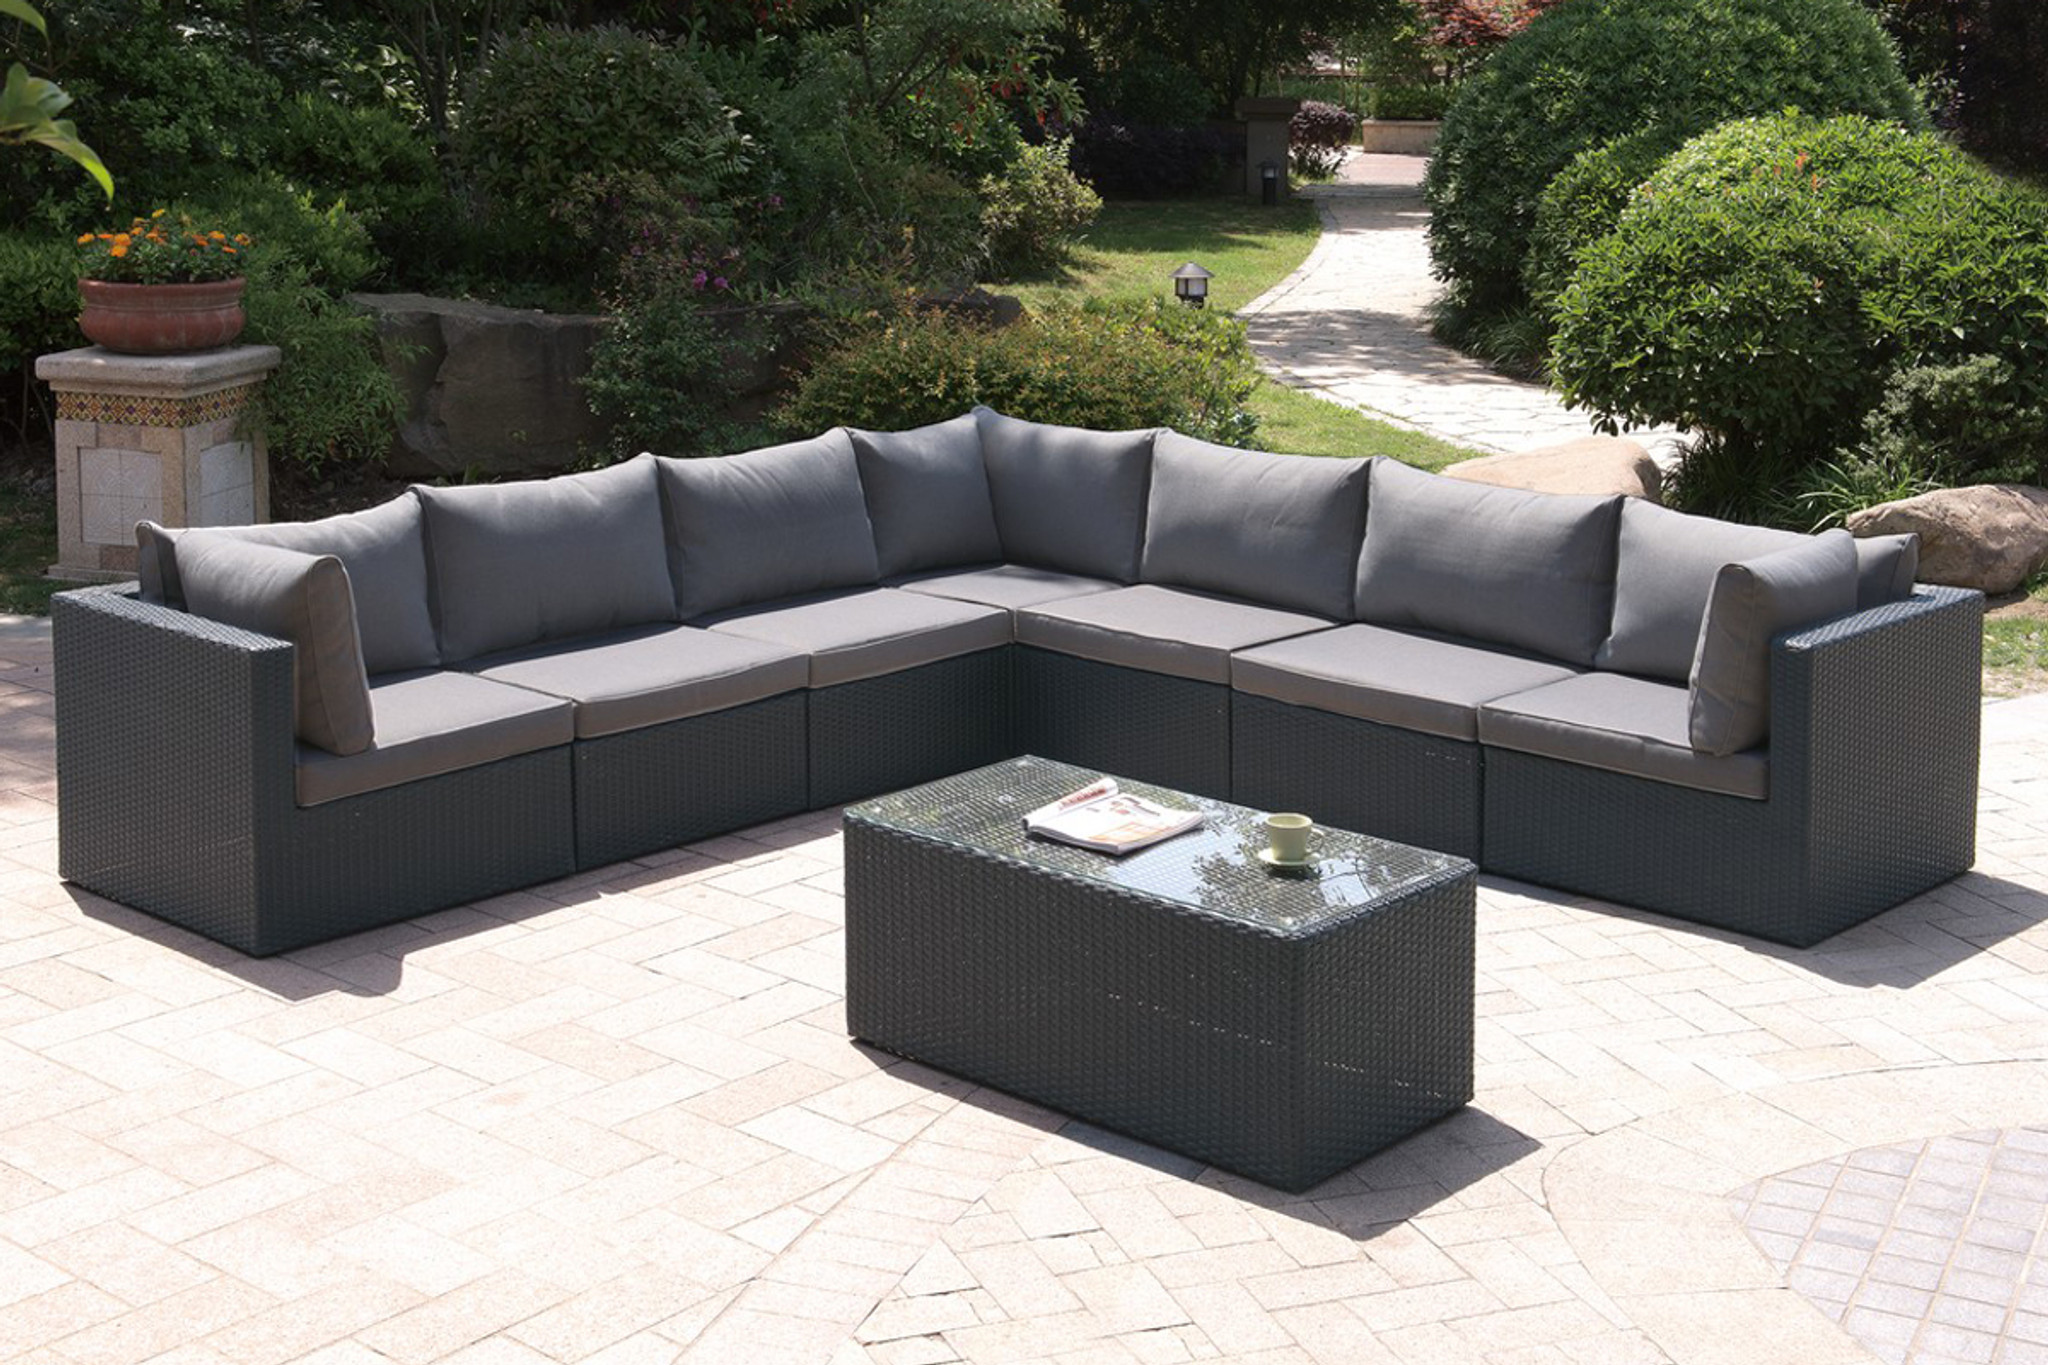 Cheap L Shaped Rattan Sofa 8pc Outdoor Patio Sofa Set In Dark Brown Resin Wicker And Grey Seat Cushions